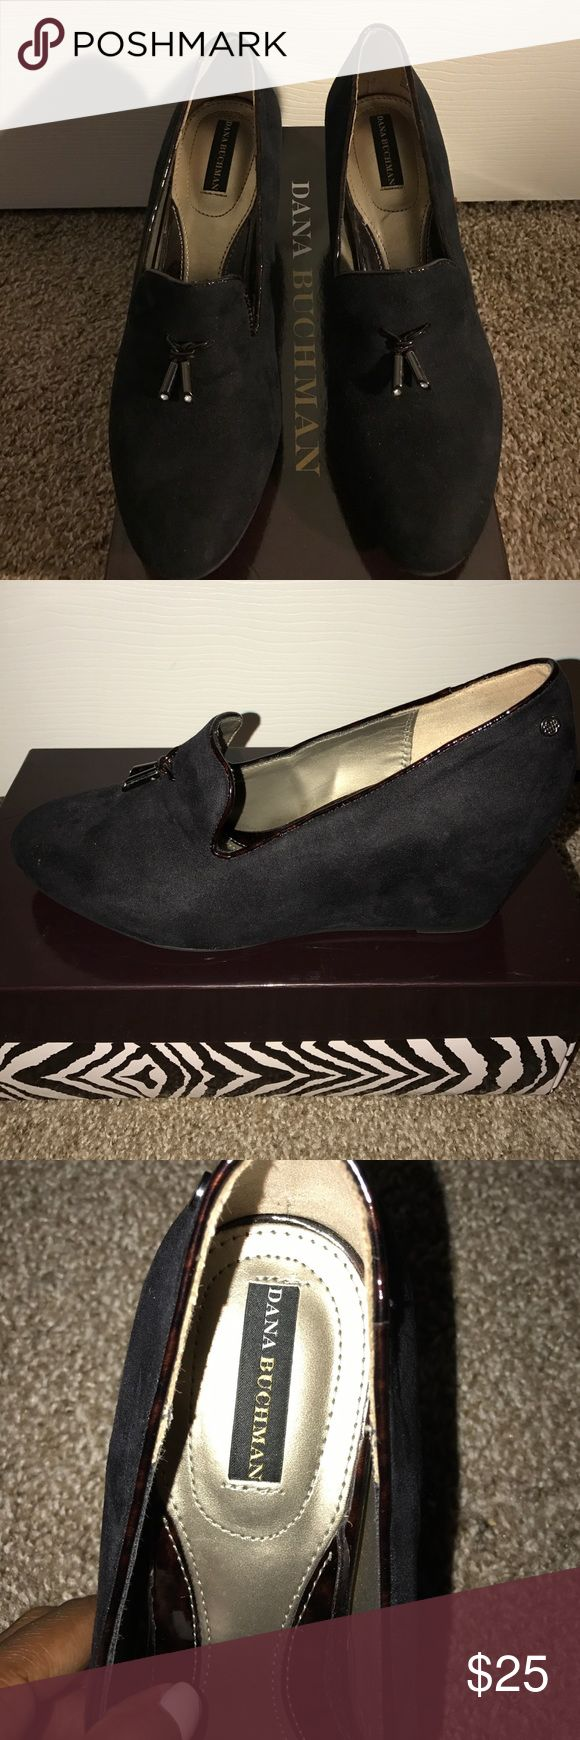 Wedge loafers Black suede dressy wedged loafers. Size 8.5, worn ONCE for job interview, EXTREMELY COMFORTABLE! They've become too small for me. They are true to size. Dana Buchman Shoes Wedges